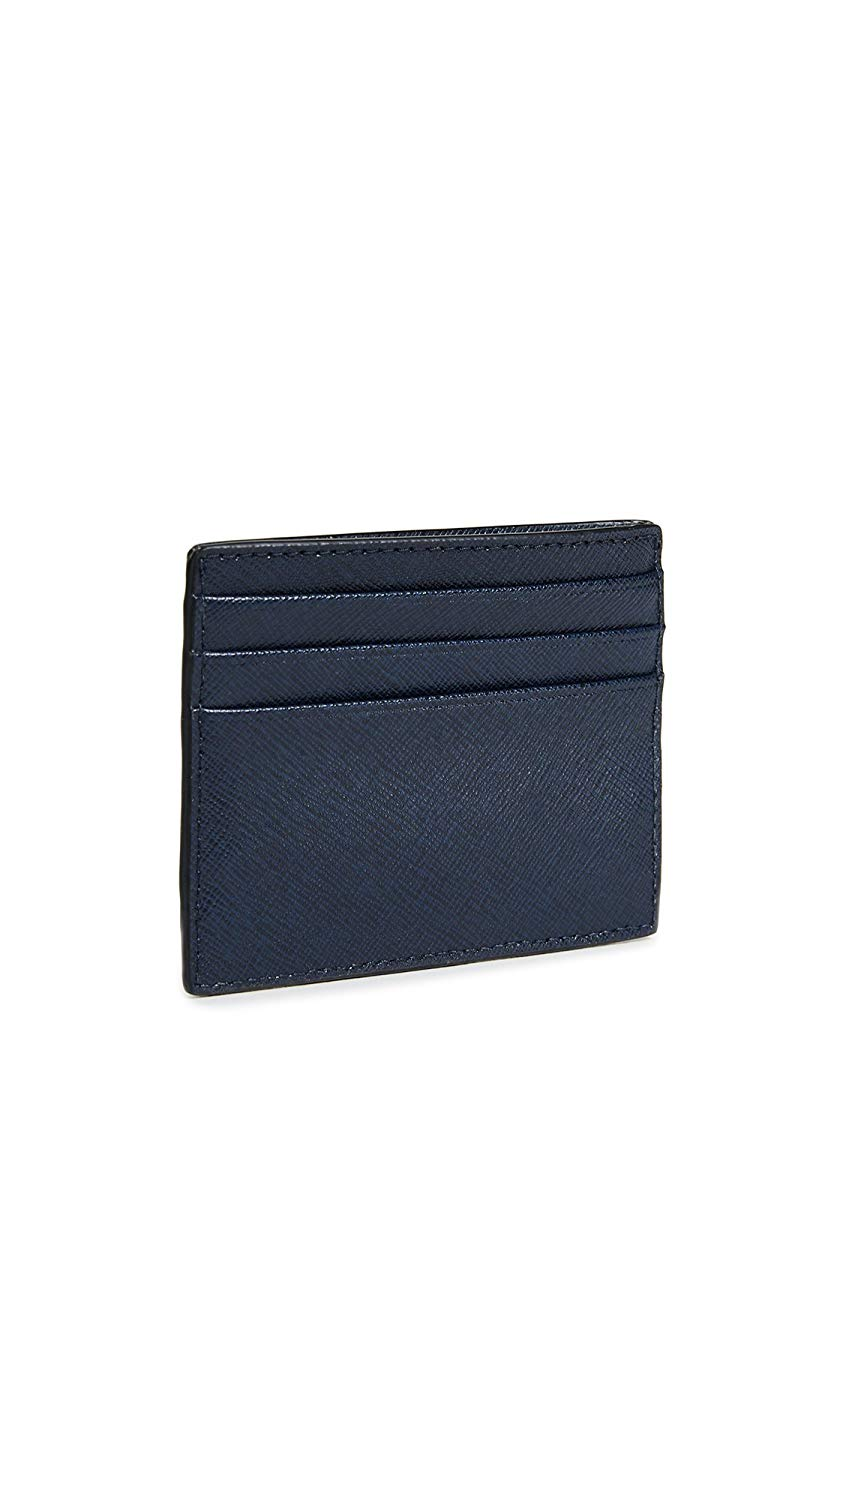 New-Michael-Kors-Men-039-s-Wallet-Navy-Blue-Saffiano-RFID-Leather-Card-Case-38-532 thumbnail 2